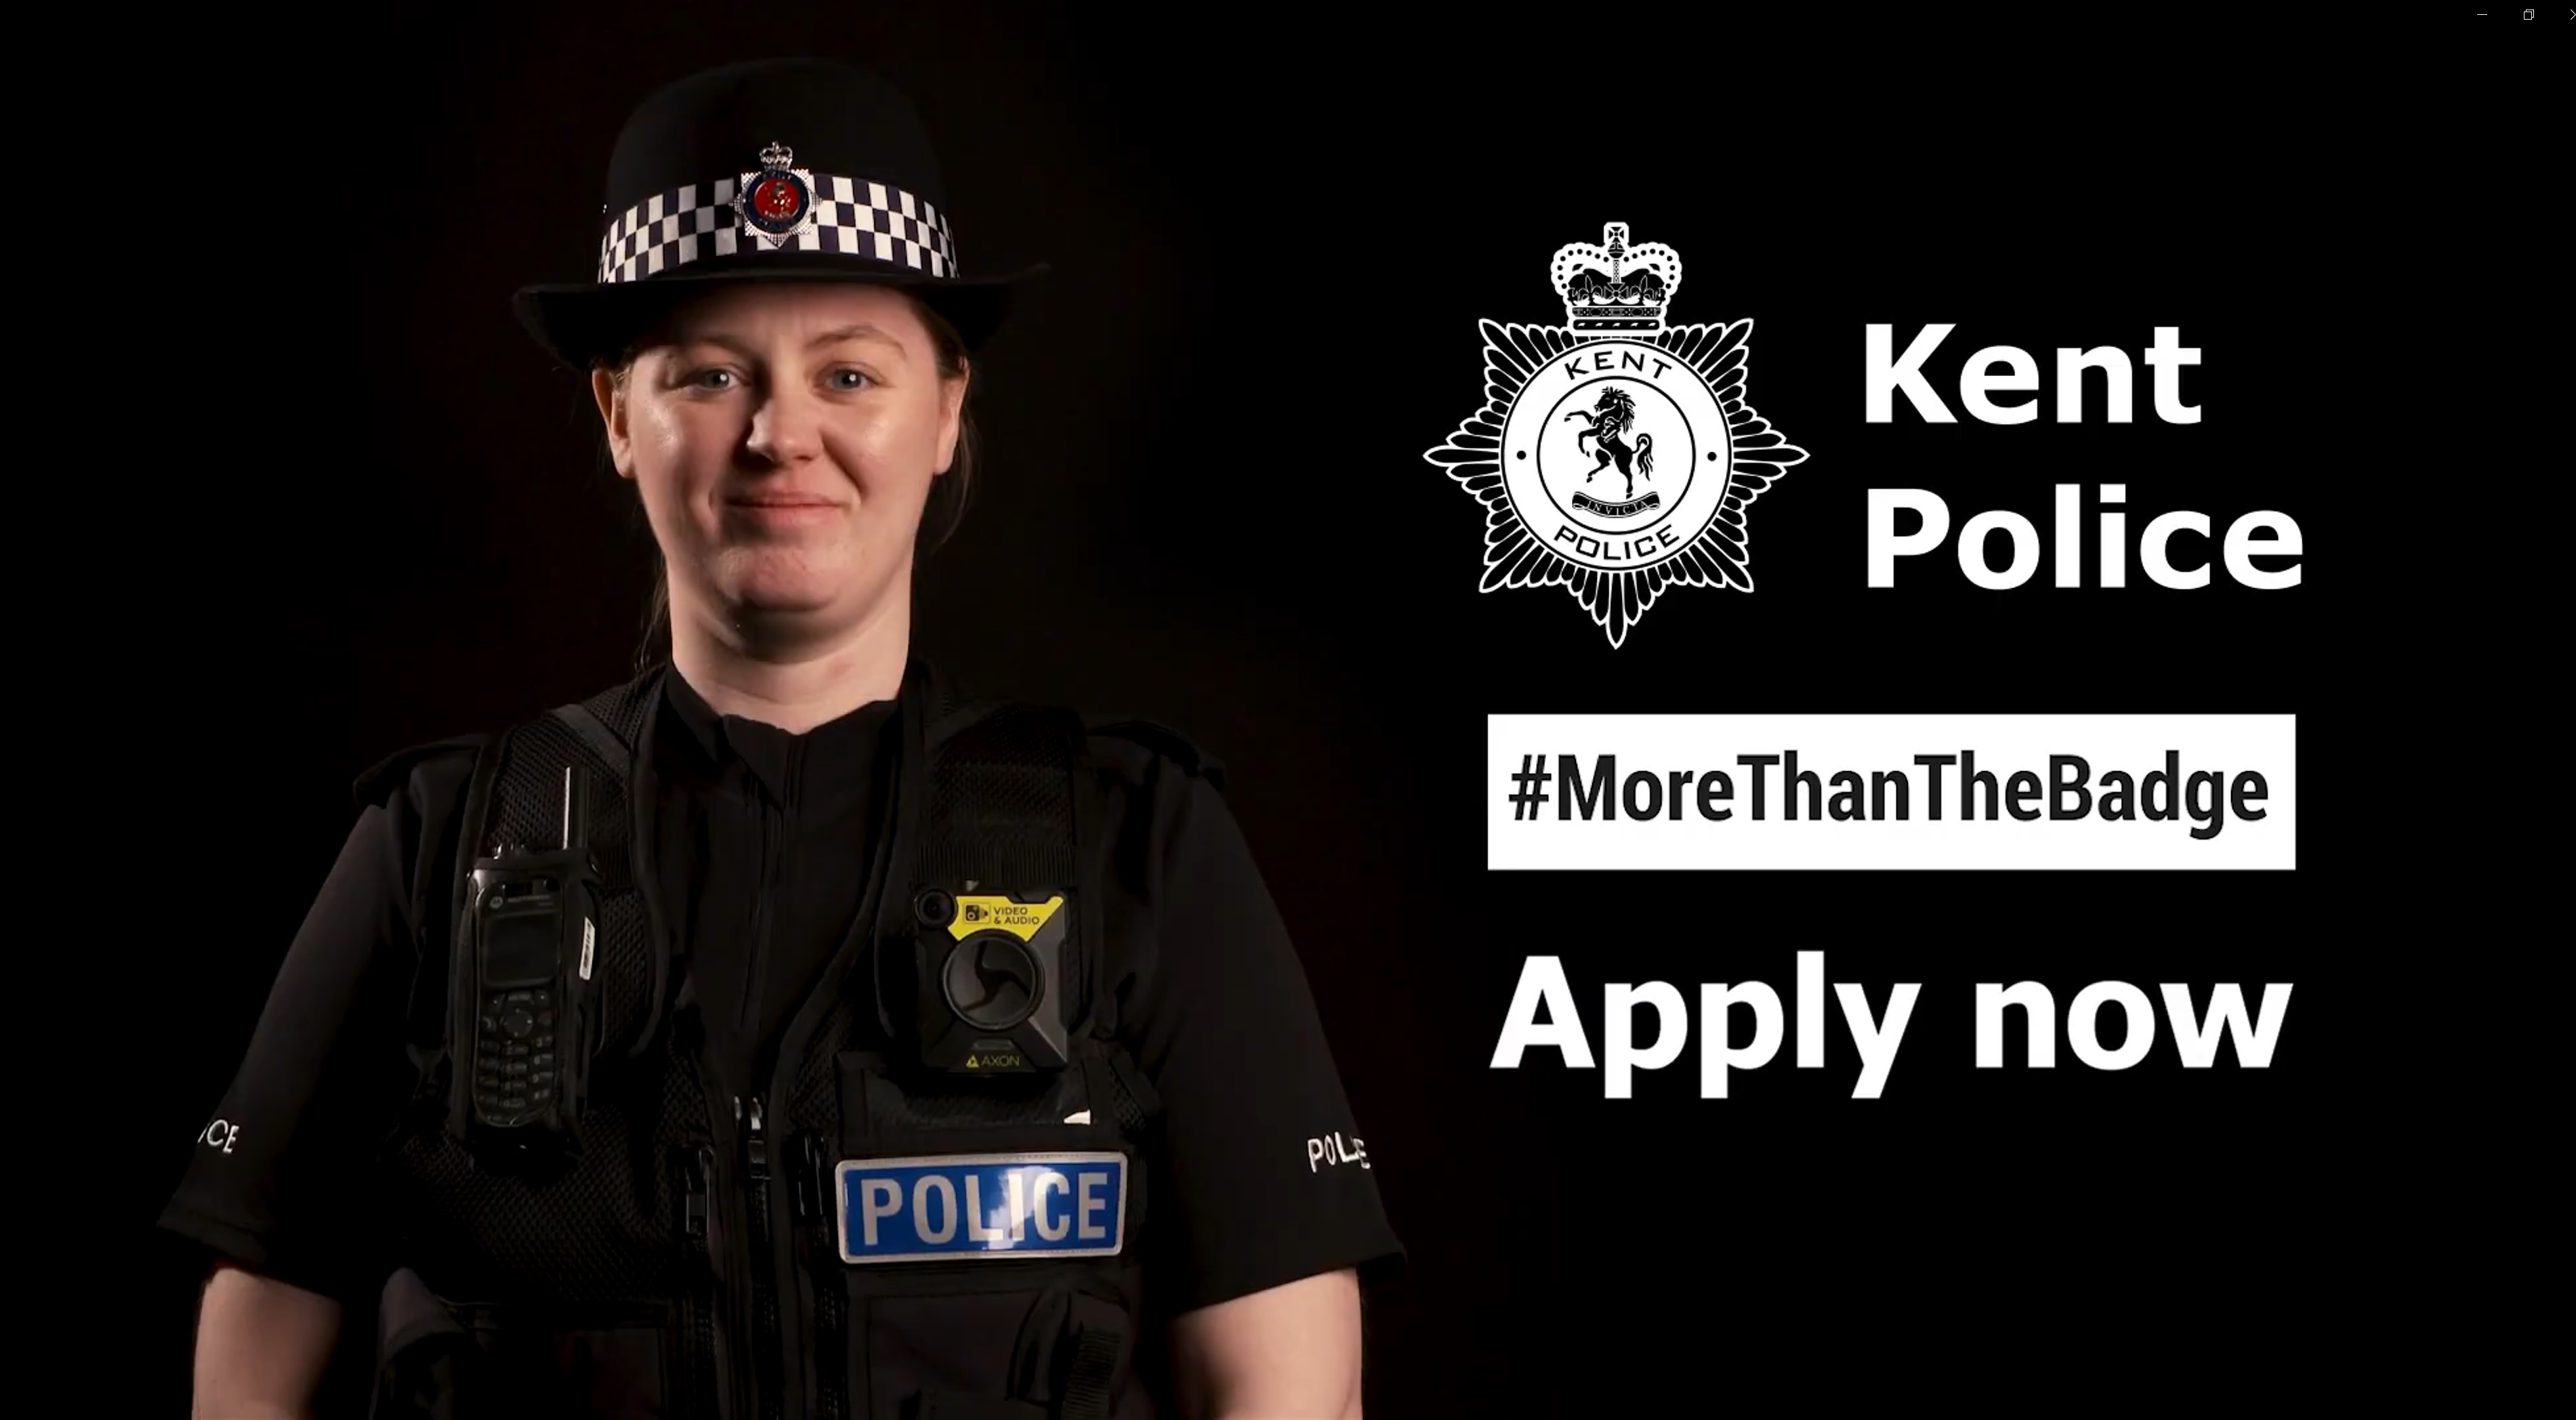 Kent Police Recruitment Commercial